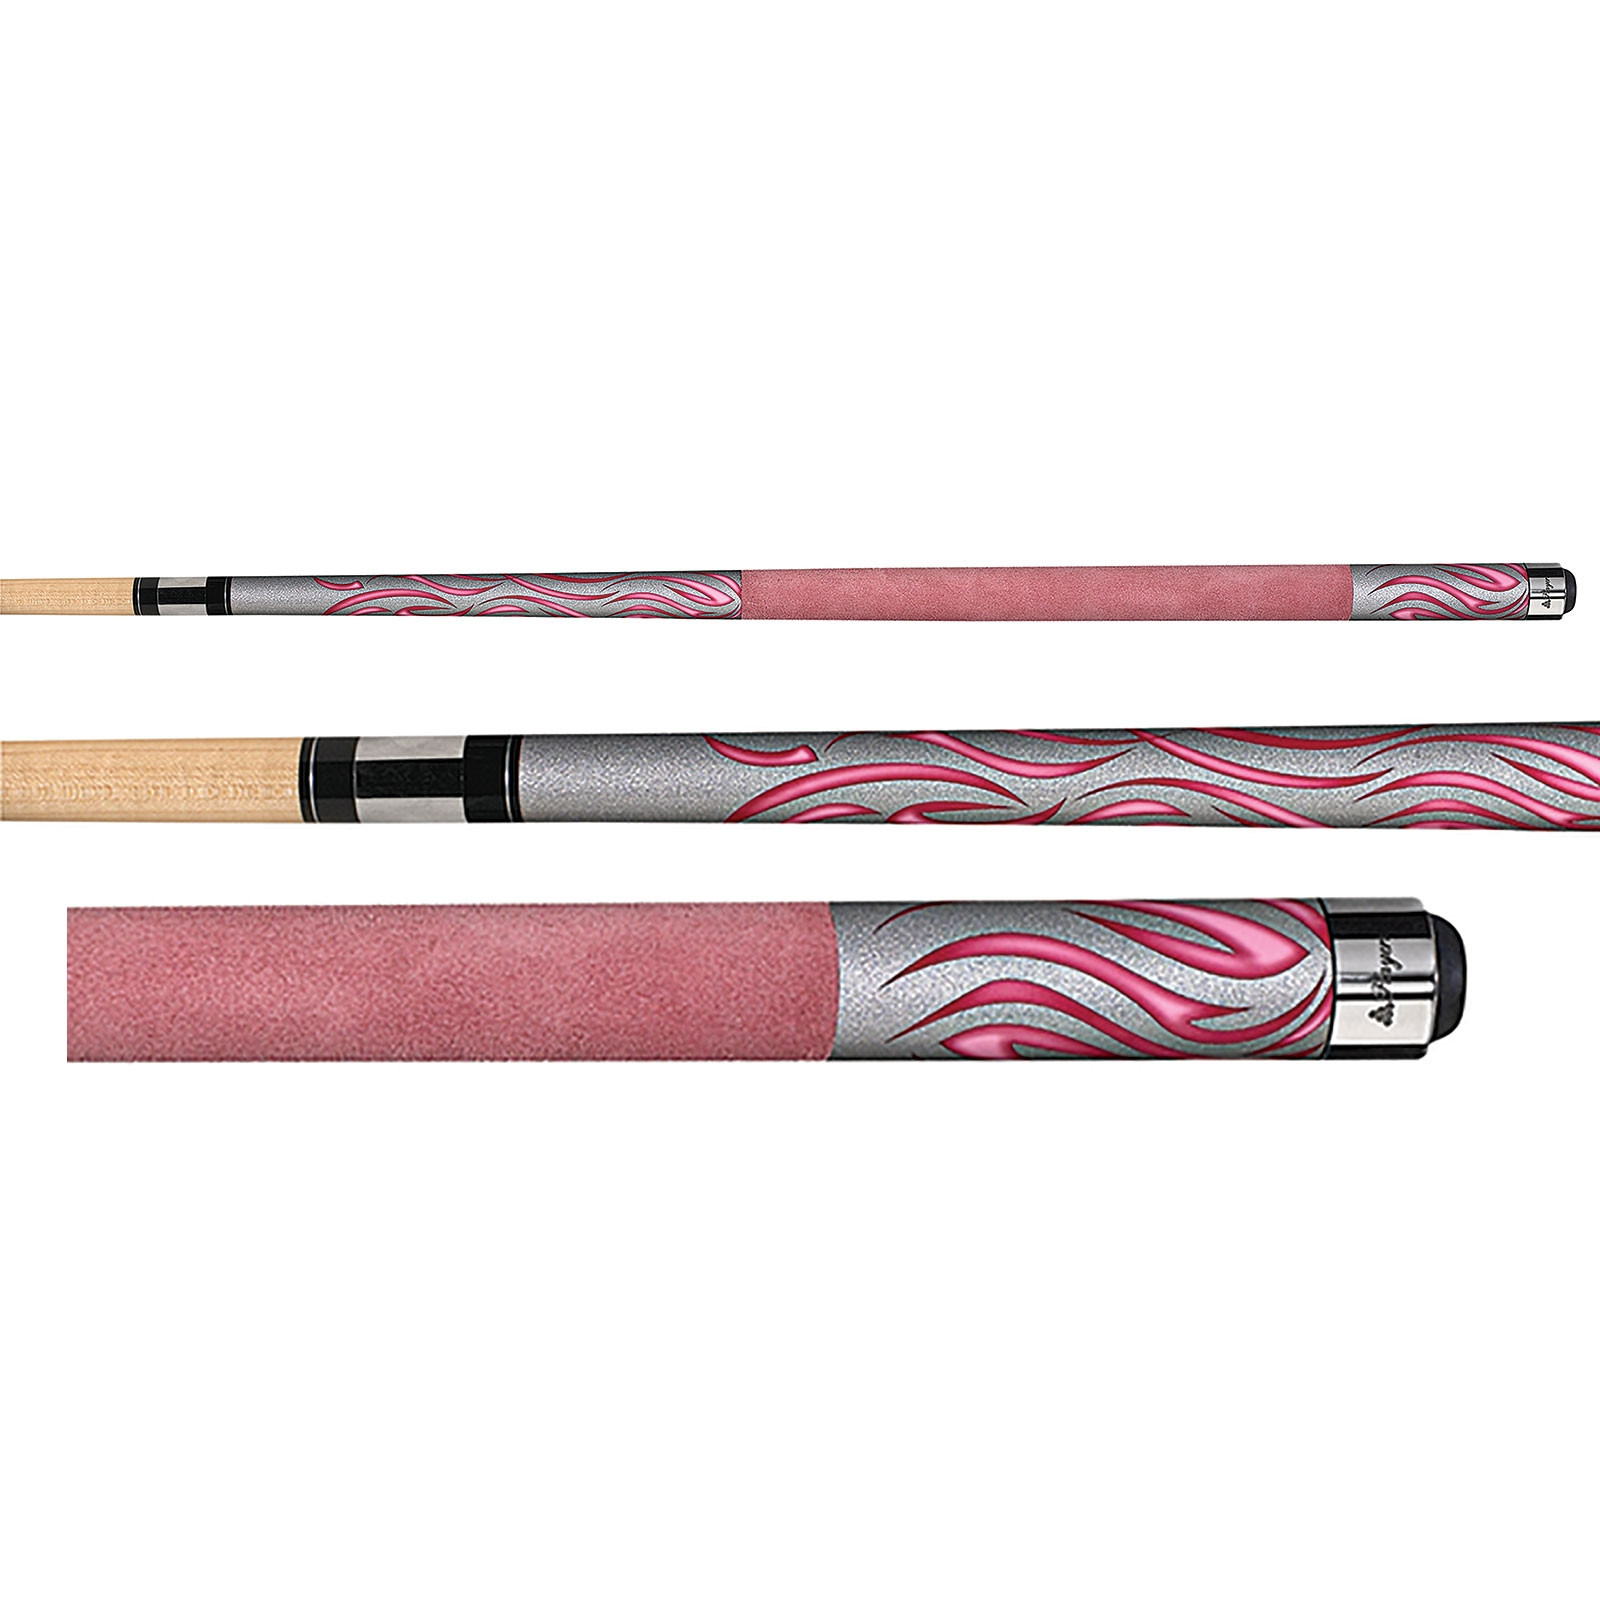 Players F-2780 Flirt Sexy in Suede Pink Pool Cue Stick